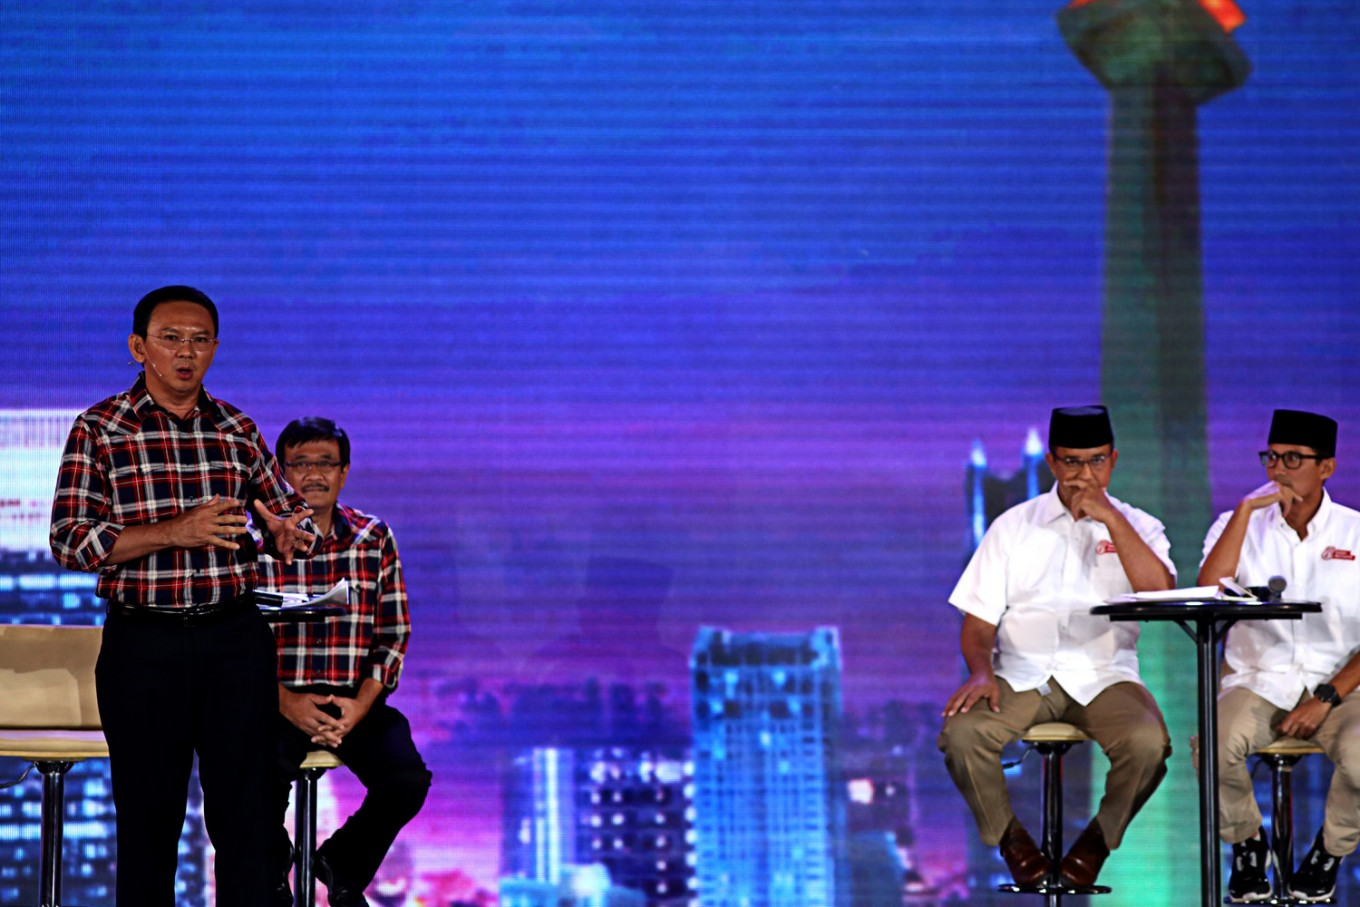 Jakarta election debate to be held on April 12